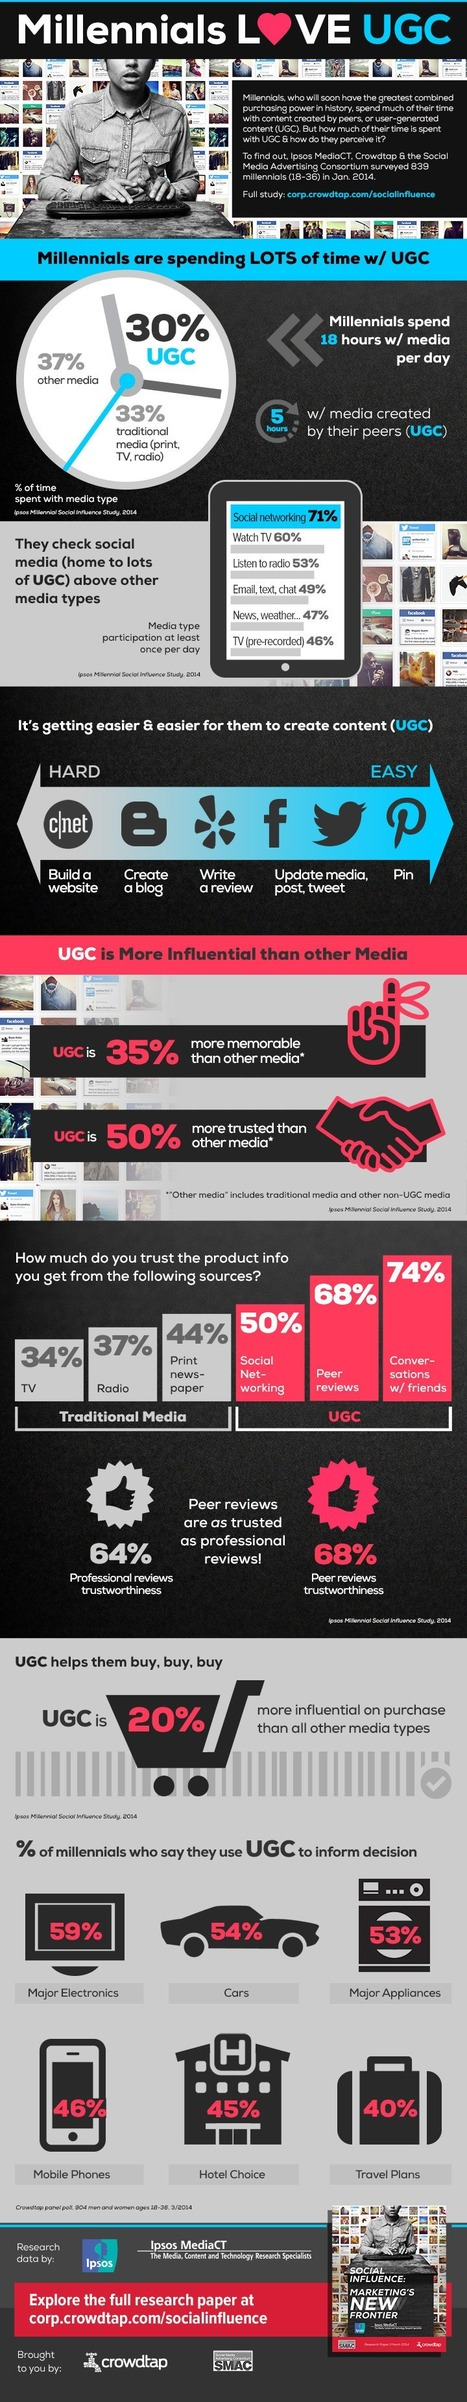 Millennials trust User-Generated Content (UGC) 50% more than other media | Bradwell Institute Media | Scoop.it